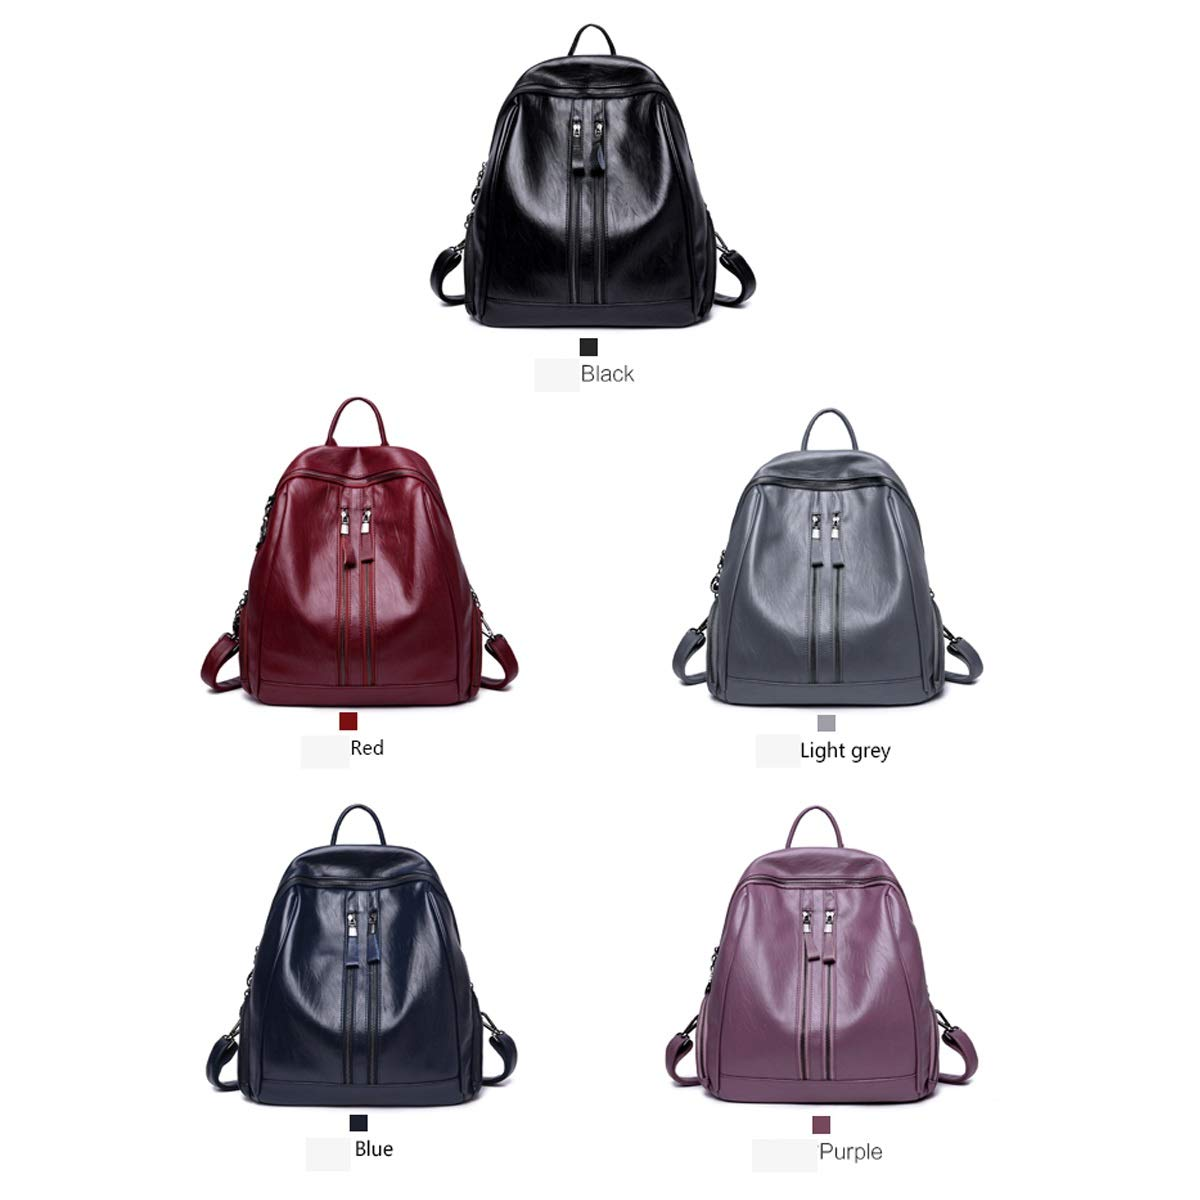 Black//Blue//Red//Purple//Gray Large Capacity PU Leather for Women /& Men ZHICHUANG Girls Multifunctional Backpack for Daily Travel//Outdoor//Travel//School//Work//Fashion//Leisure